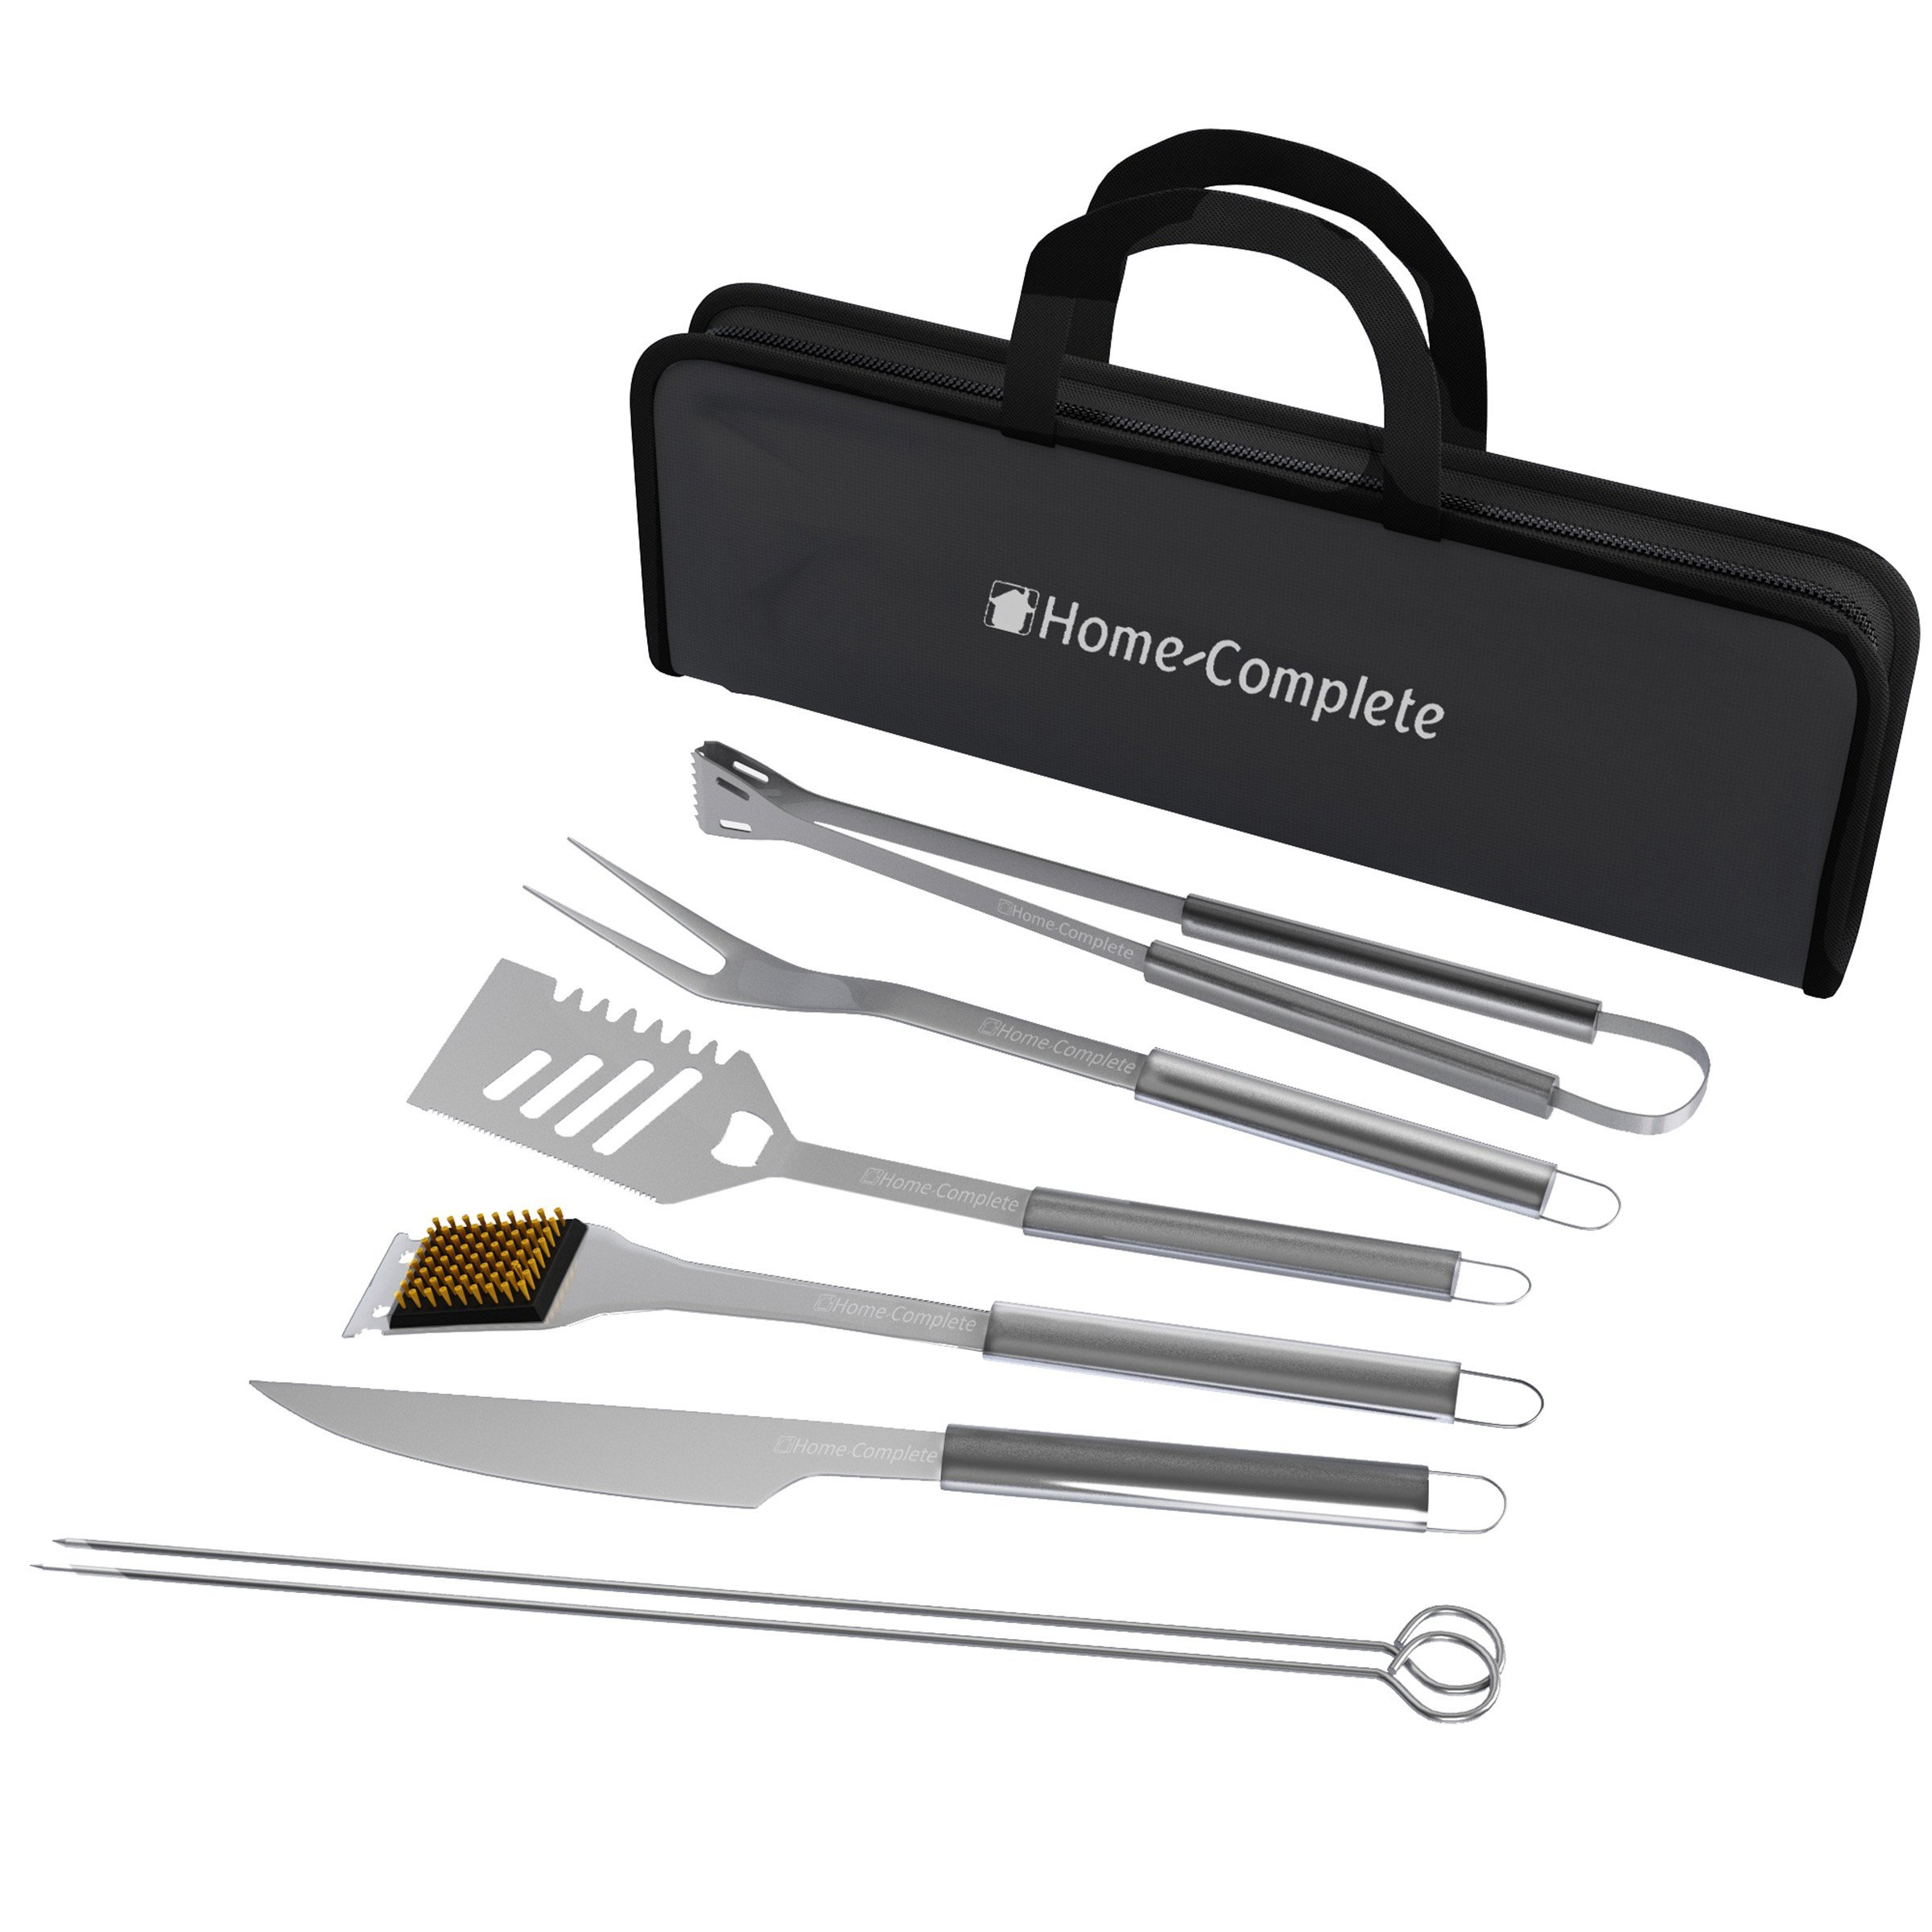 Home-Complete HC-1004 BBQ Tool Set- Stainless Steel Barbecue Grilling Accessories with, Silver